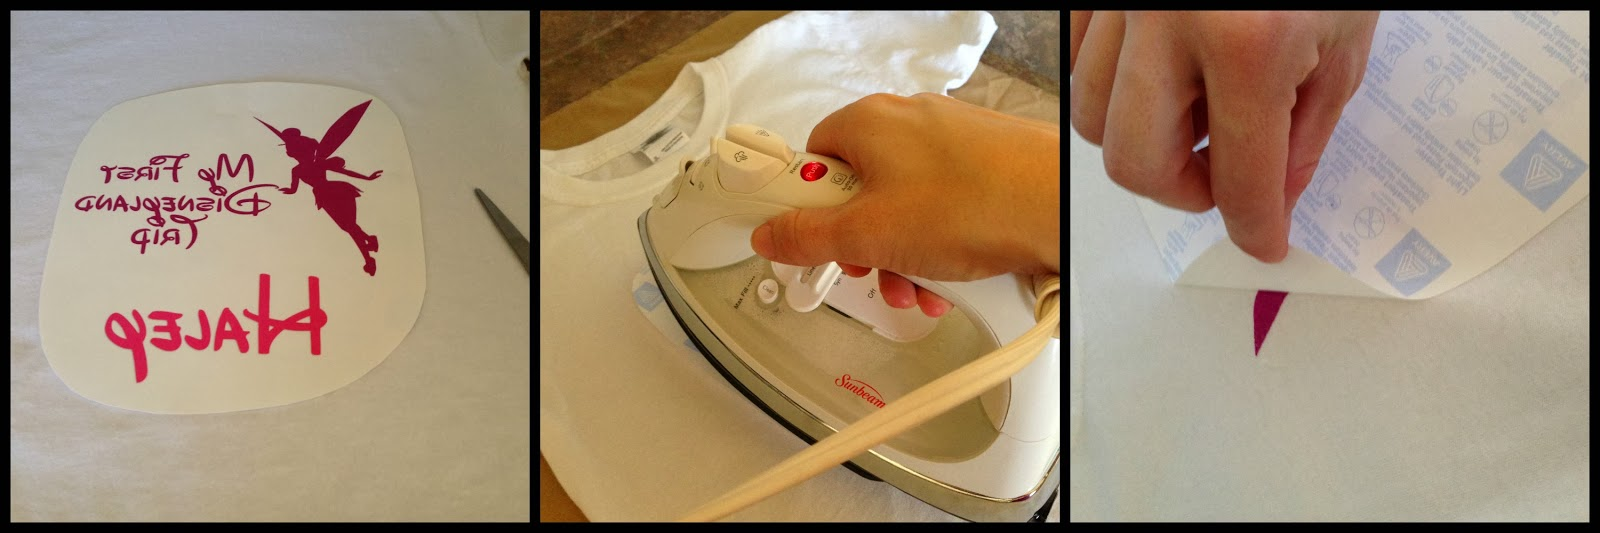 how to close an ironing board with broken lever